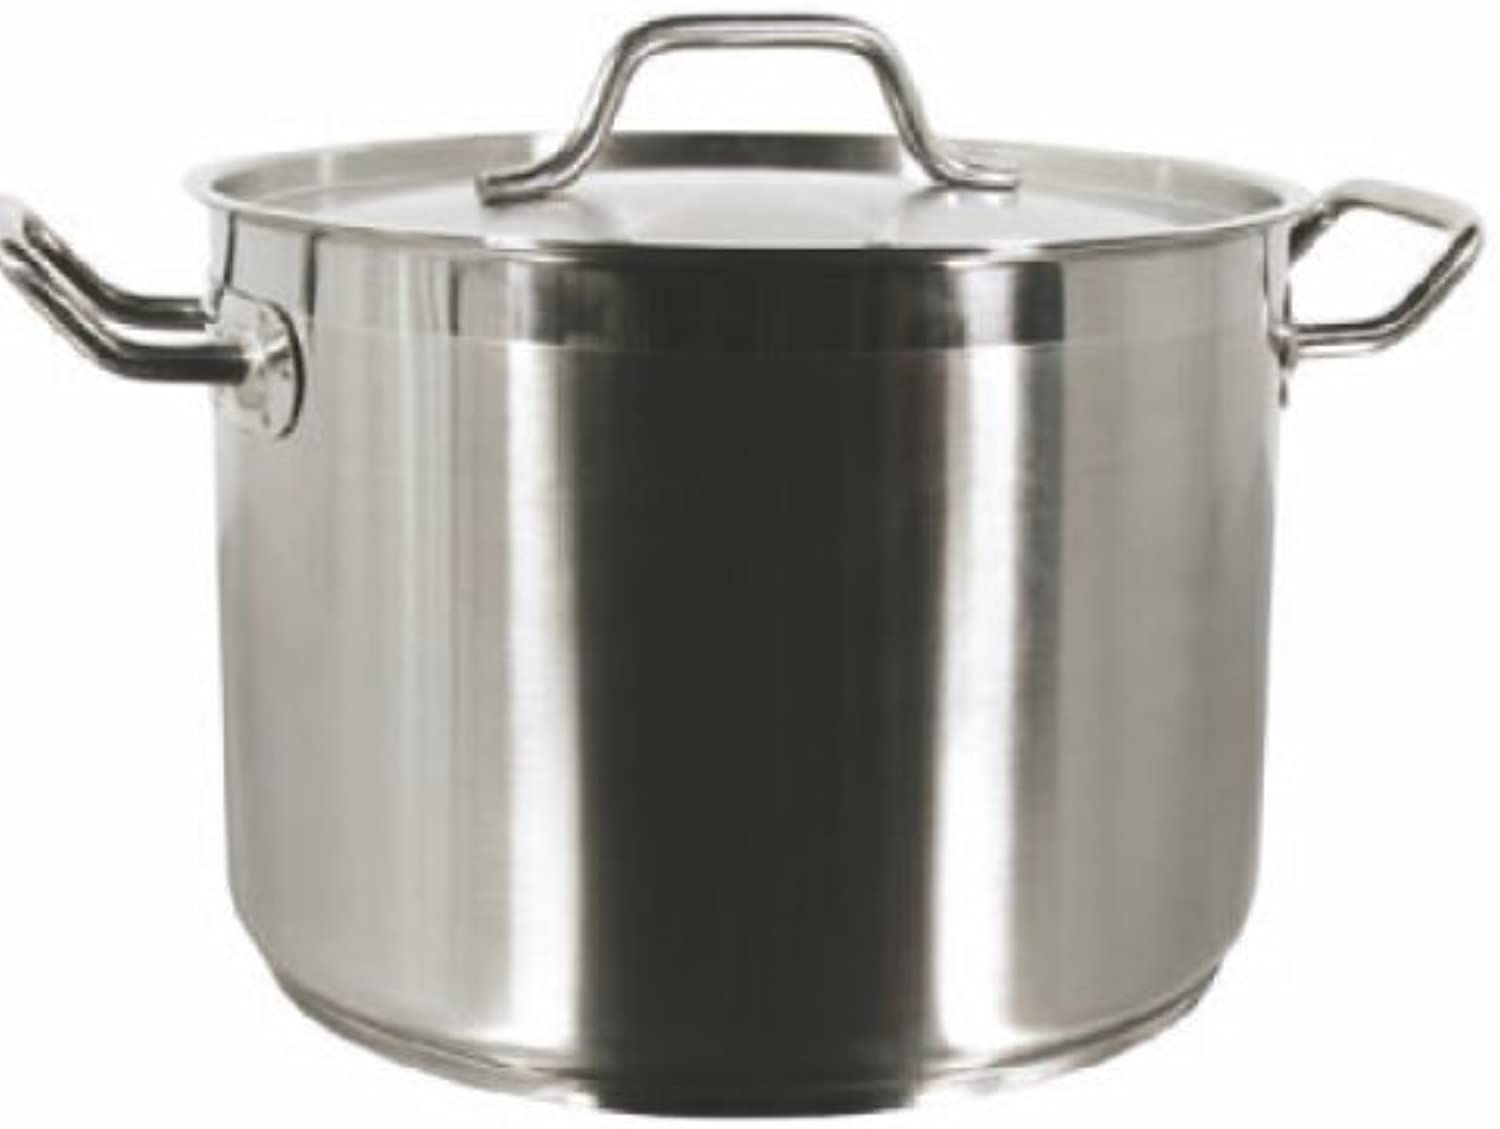 12 Qt Stock Pot W Lid Stainless Steel Commercial Grade -NSF Certified- Professional Quality